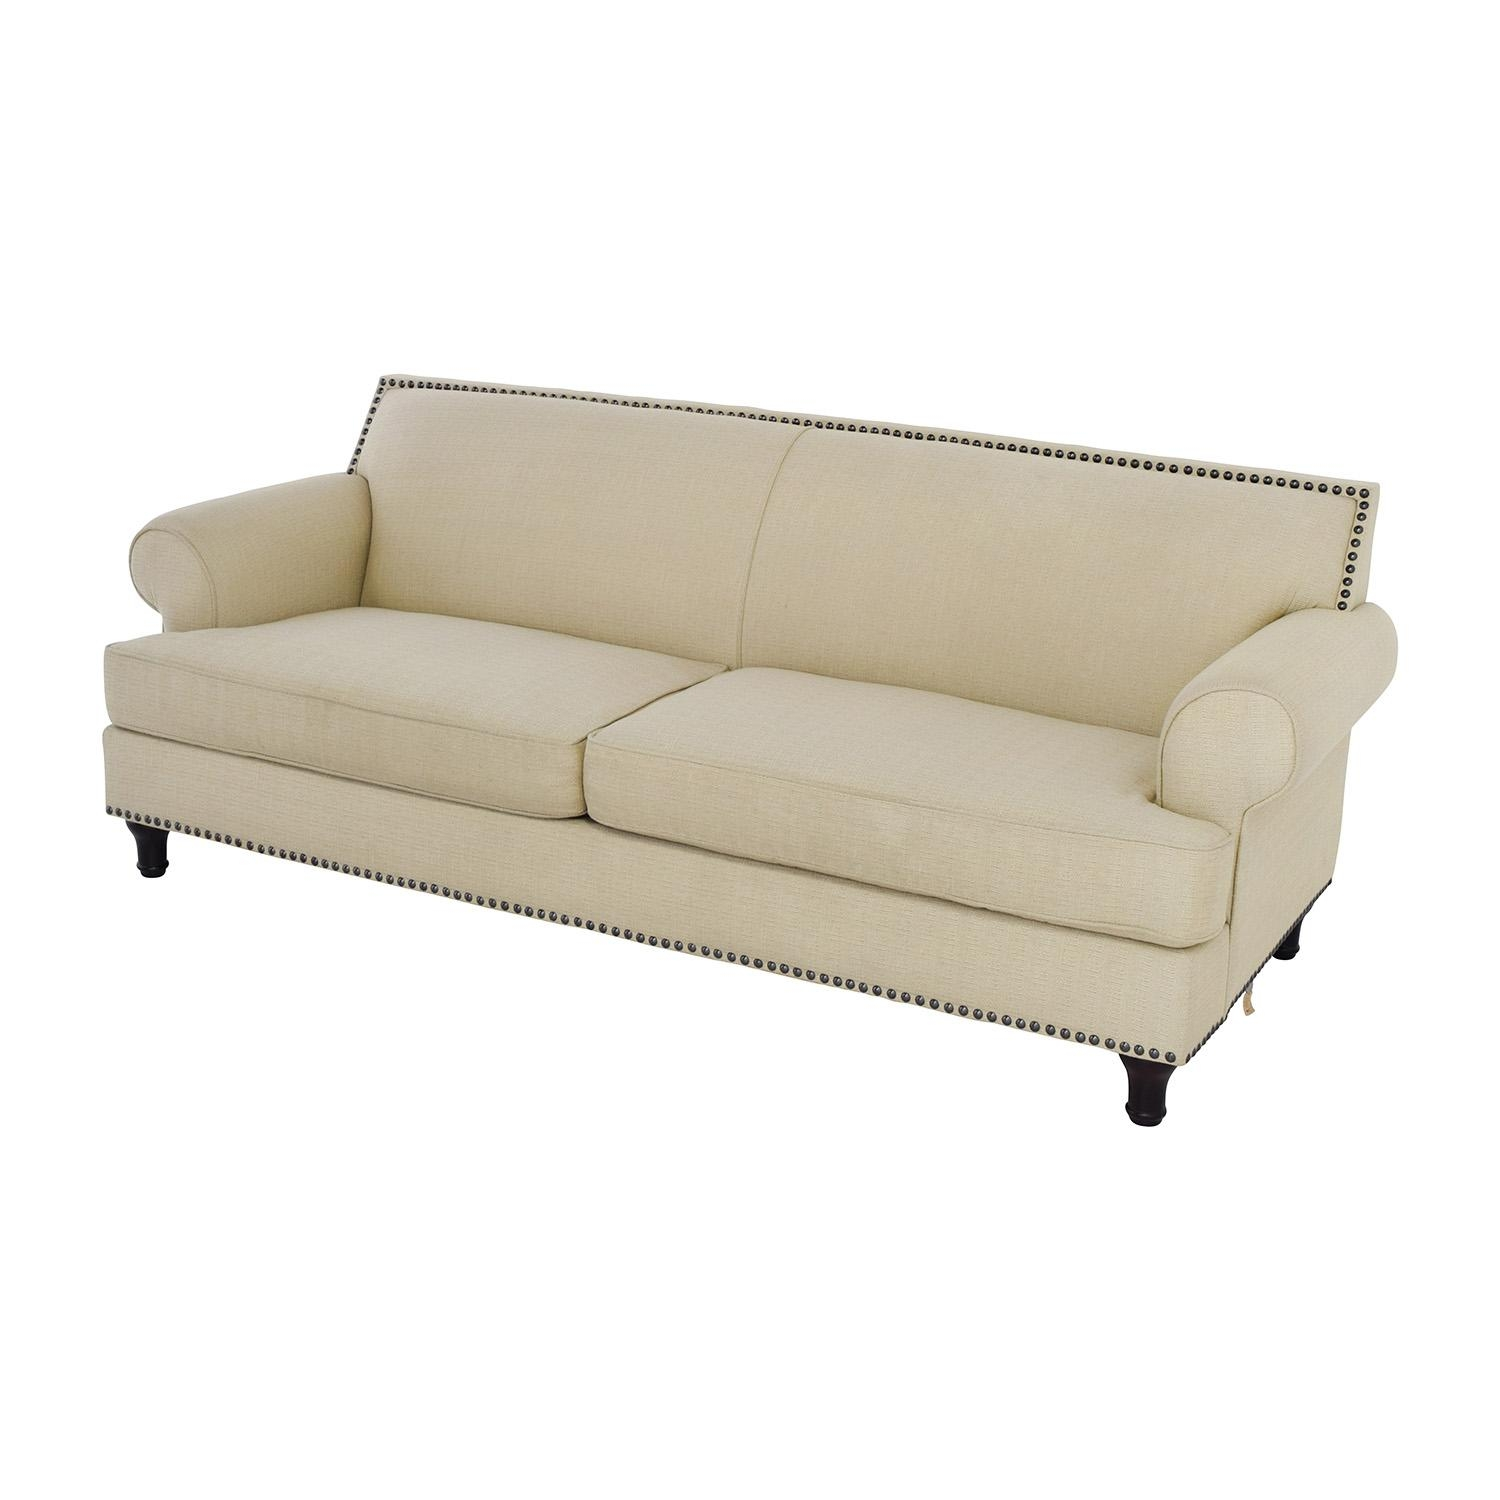 48% Off – Pier 1 Pier 1 Carmen Tan Couch With Studs / Sofas For Pier 1 Sofa Beds (Image 2 of 20)